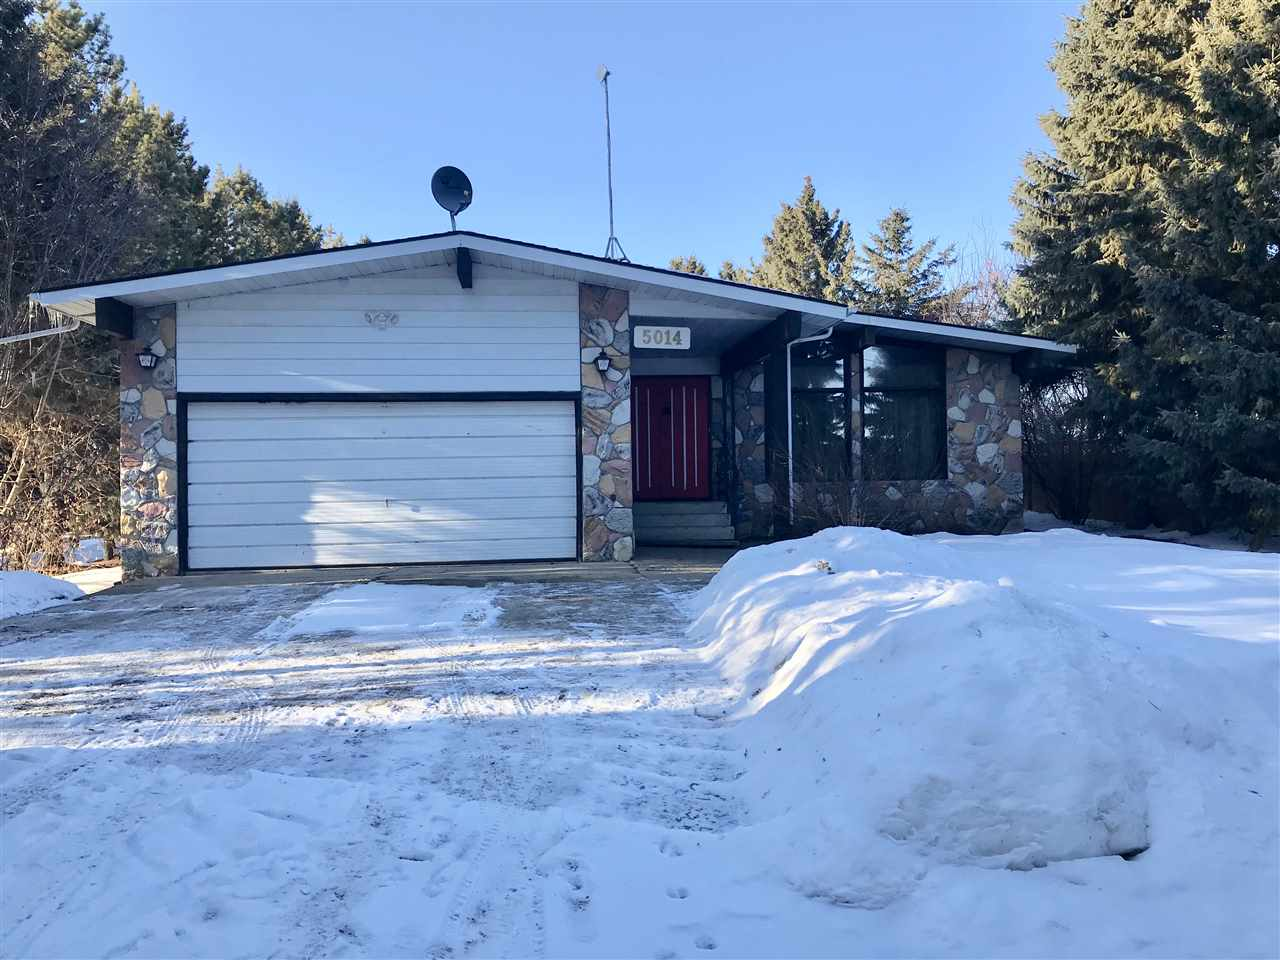 This beautiful and spacious 1350 sq ft family home is situated on a 75' x 220' (0.38 acres) treed lot and features 3+2 bedrooms, 3 bathrooms and a 90% finished basement. The main floor has a huge bright living room with vaulted ceilings and a formal dining area, nice kitchen with an eating nook overlooking the beautiful back yard, 3 good sized bedrooms, 2 bathrooms and a separate entrance to the basement. In the basement you will find a large family room, wet bar, 2 bedrooms - one bedroom needs paint, trims, and carpet (this is the one unfinished room in the house), 2-p bathroom, laundry room, work shop area, utility room and plenty of storage. The home had some recent renovations done and they include newer carpets throughout the upstairs, linoleum in entry, hallway and bathrooms upstairs, fresh pain upstairs and downstairs, vanity in master bath, deck and shingles in 2009. Located away from the railroad tracks and only 20-30 minuted from the City of Edmonton, Nisku and Sherwood Park. A must see!!!